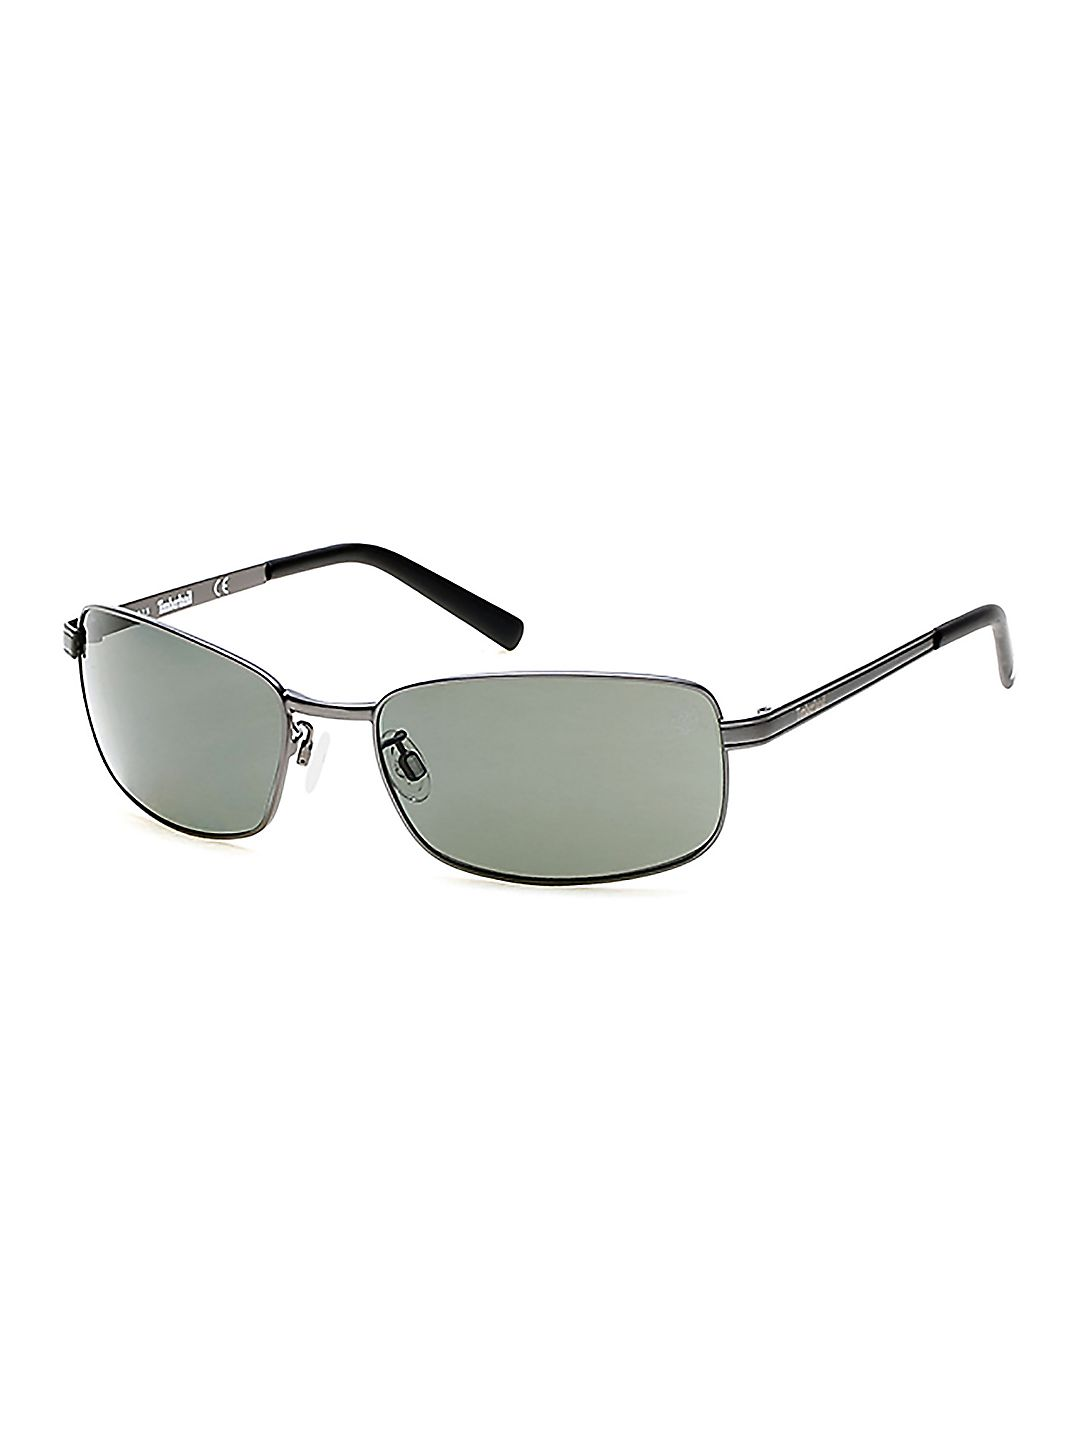 60mm Rectangular Sunglasses